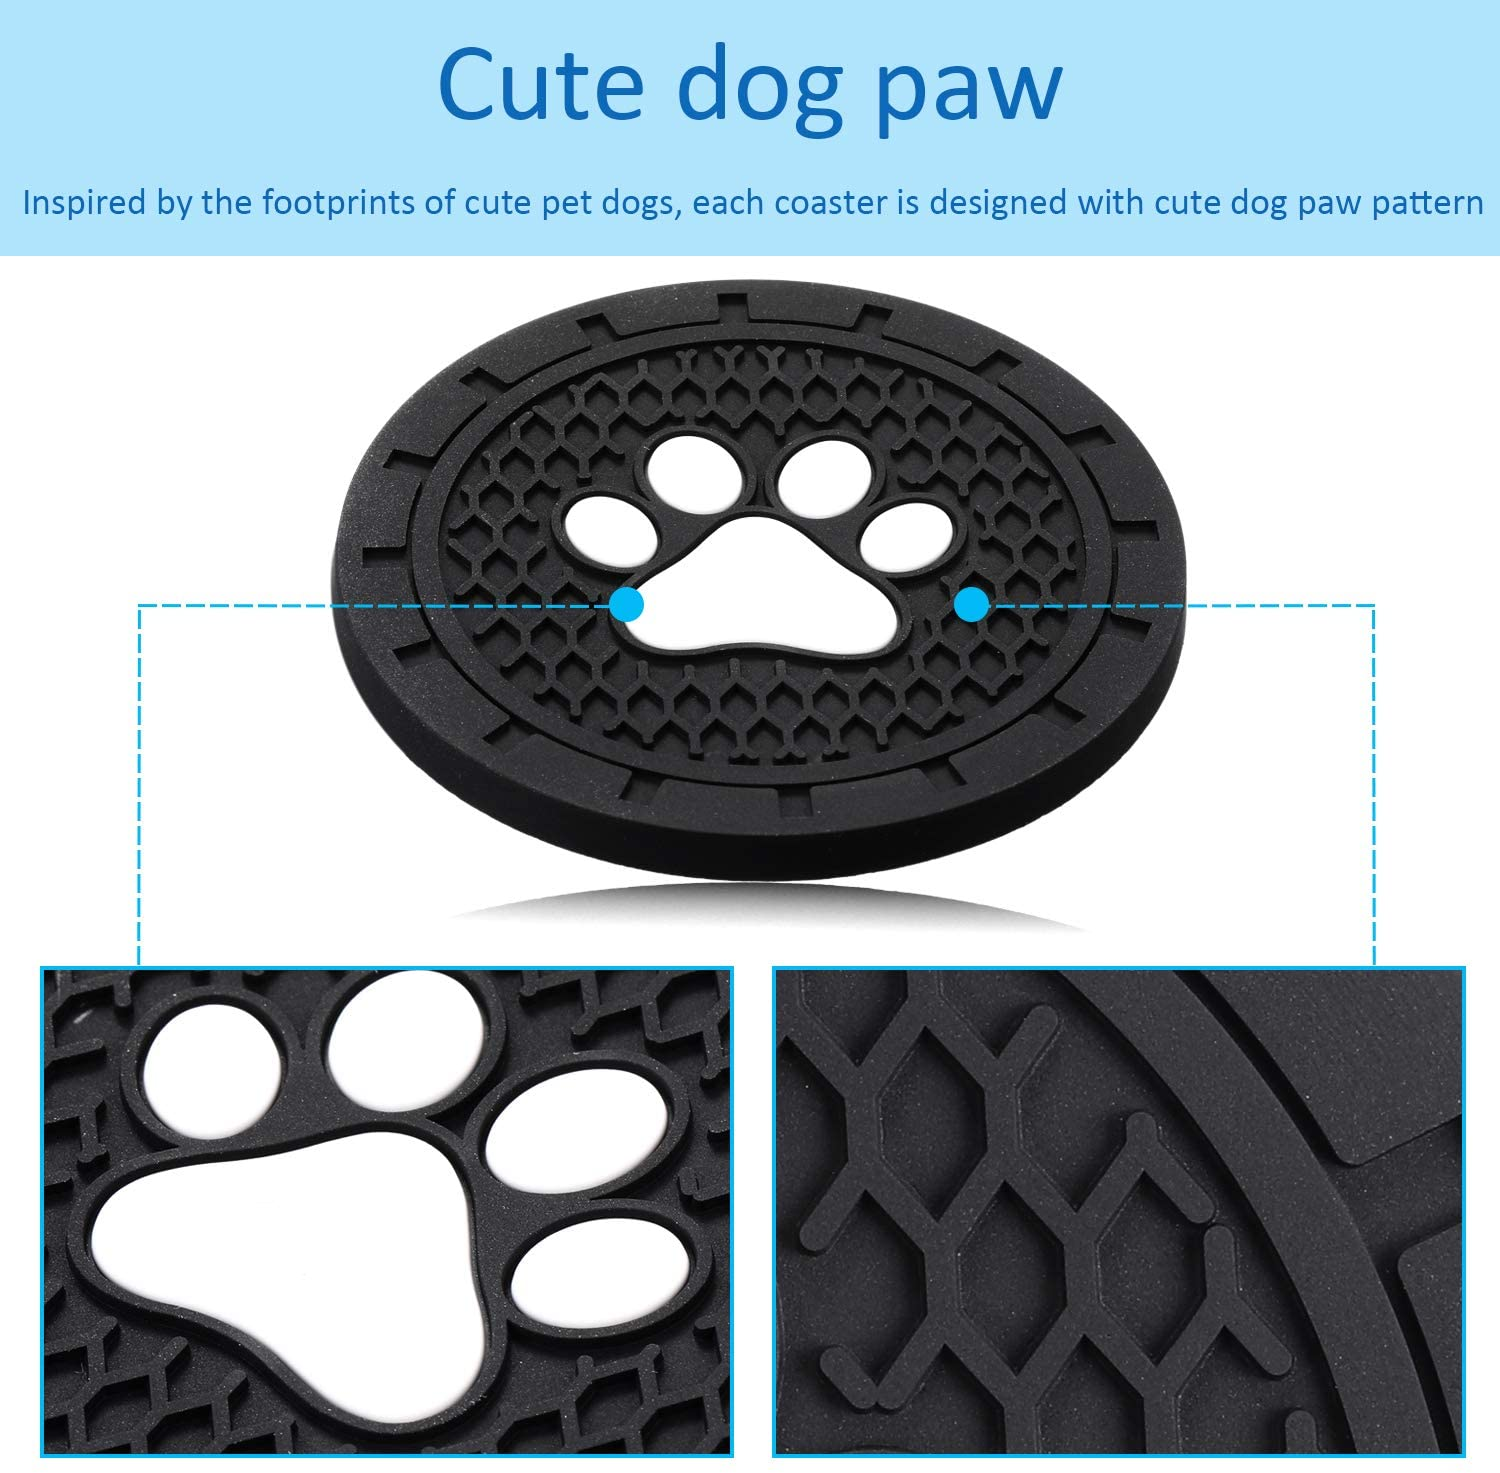 Trucks 2.75 Inch Boao 4 Packs Car Cup Holder Coasters Silicone Anti Slip Dog Paw Coaster Insert Coasters Mat Accessories for Most Cars RVs and More